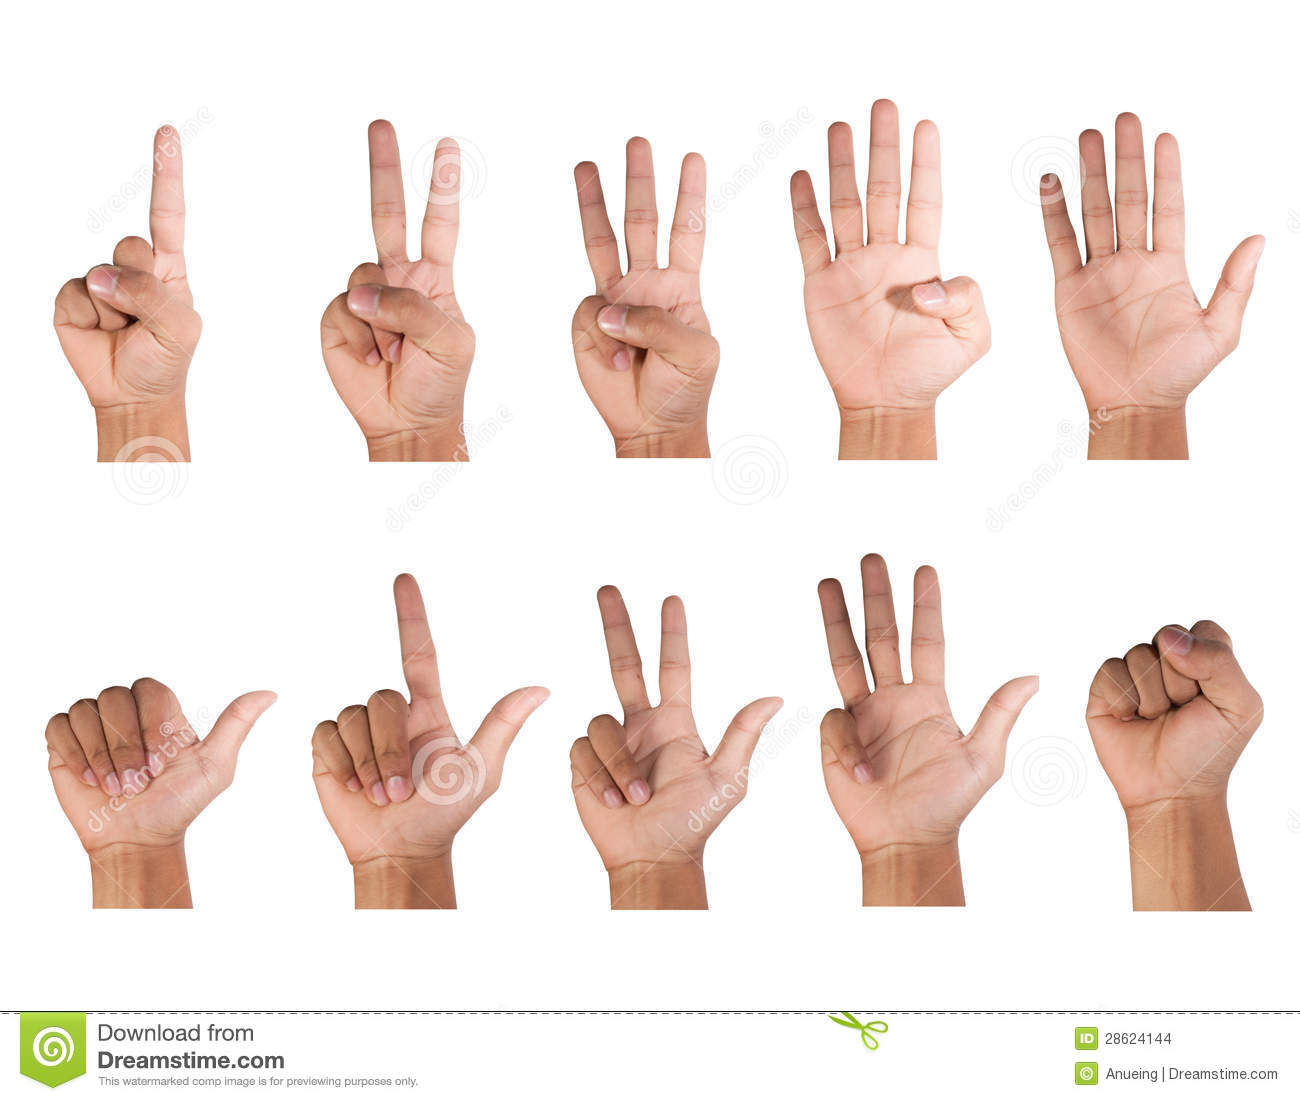 Fingers Counting Clipart Fingers Count 28624144 Jpg